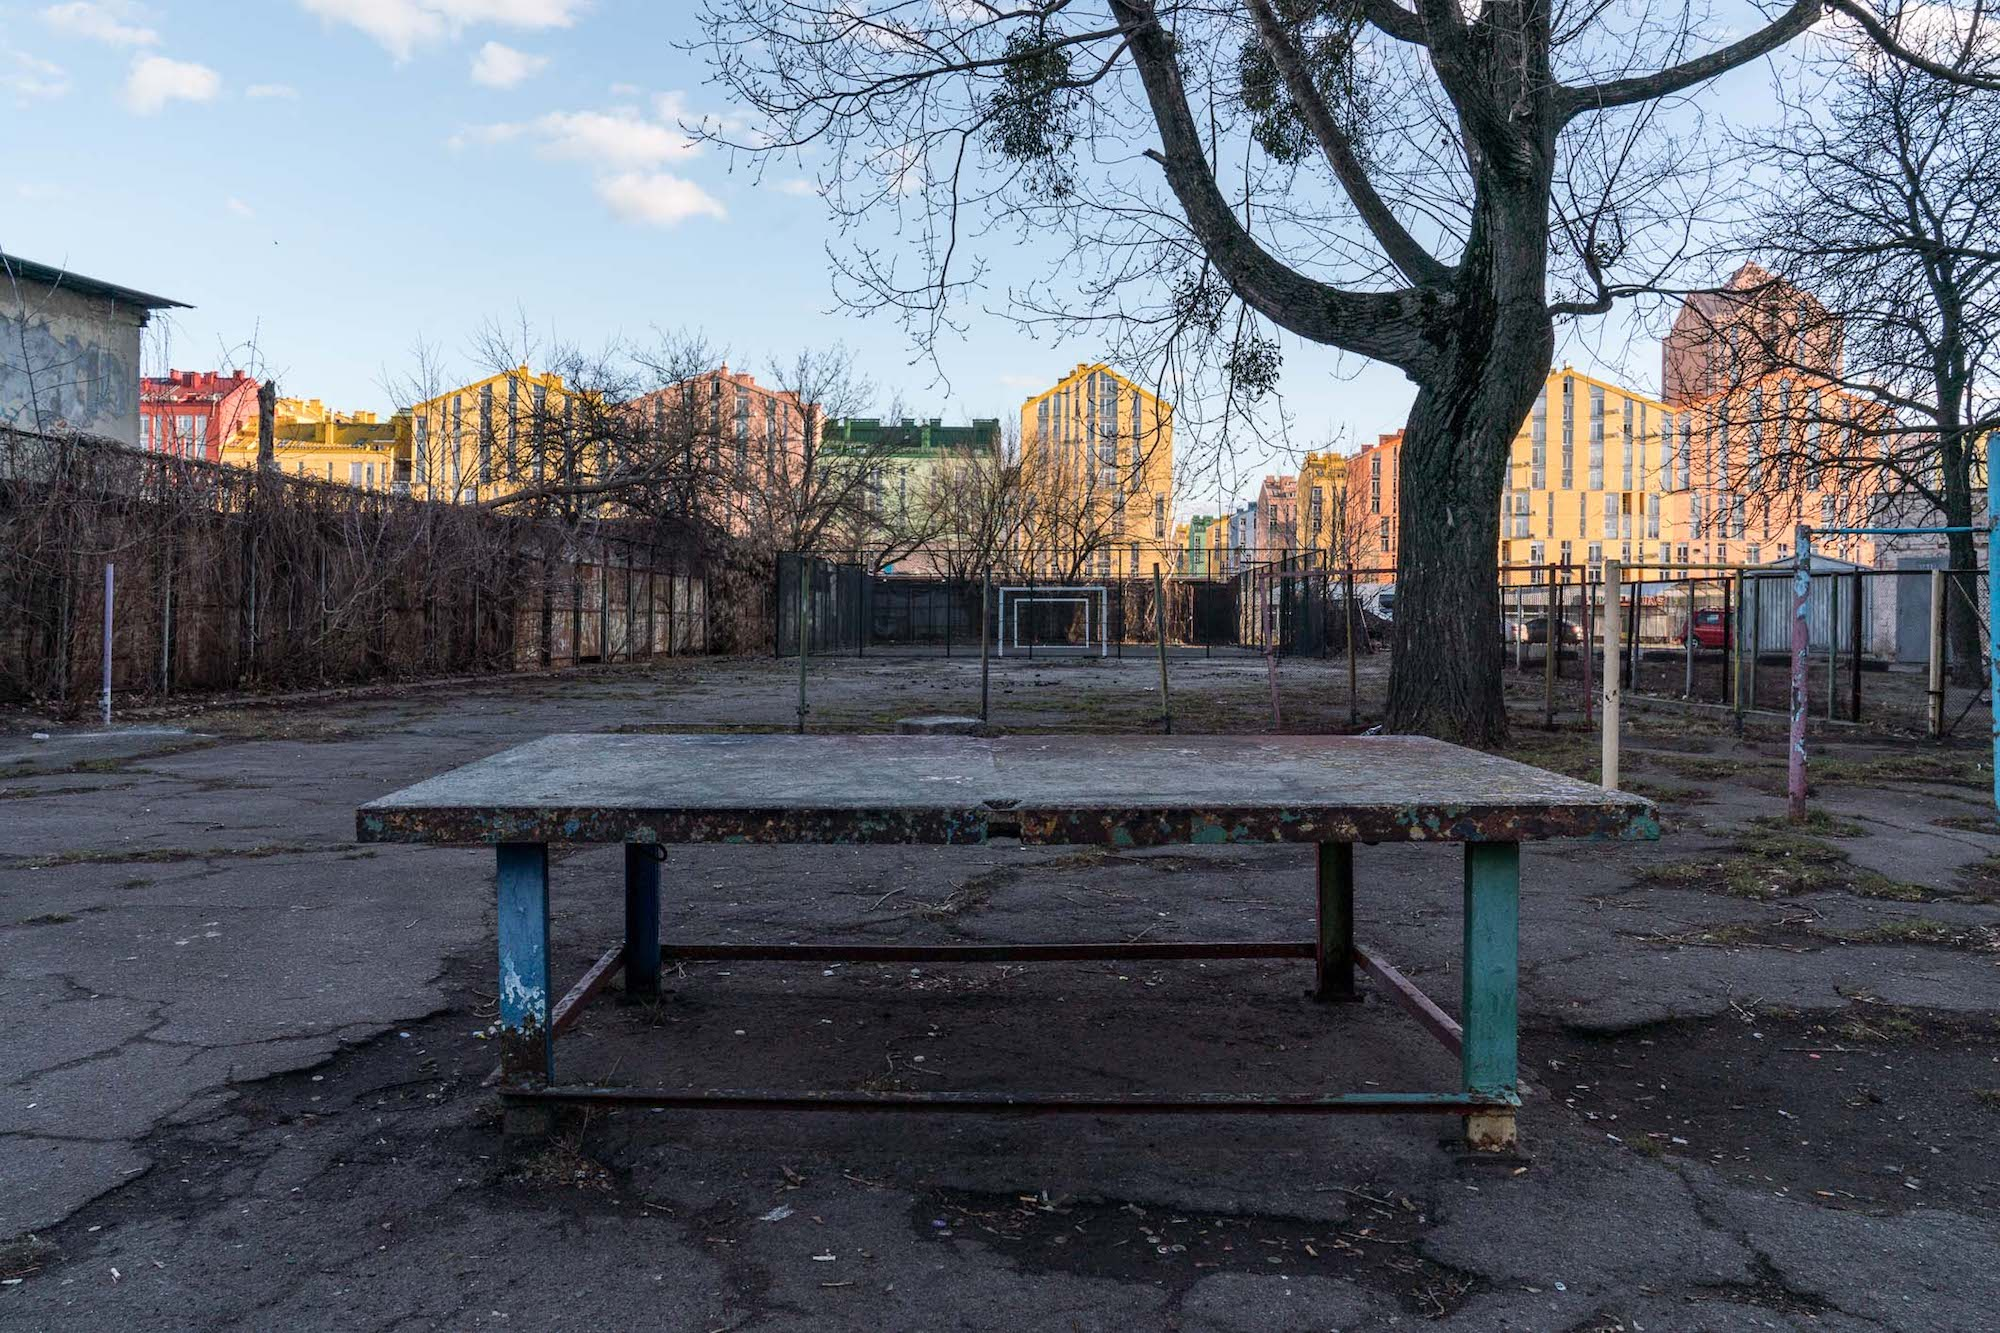 A decaying table tennis table in the yard of a neighbouring khrushchevka. Common areas of the older Soviet-era estates are generally poorly maintained